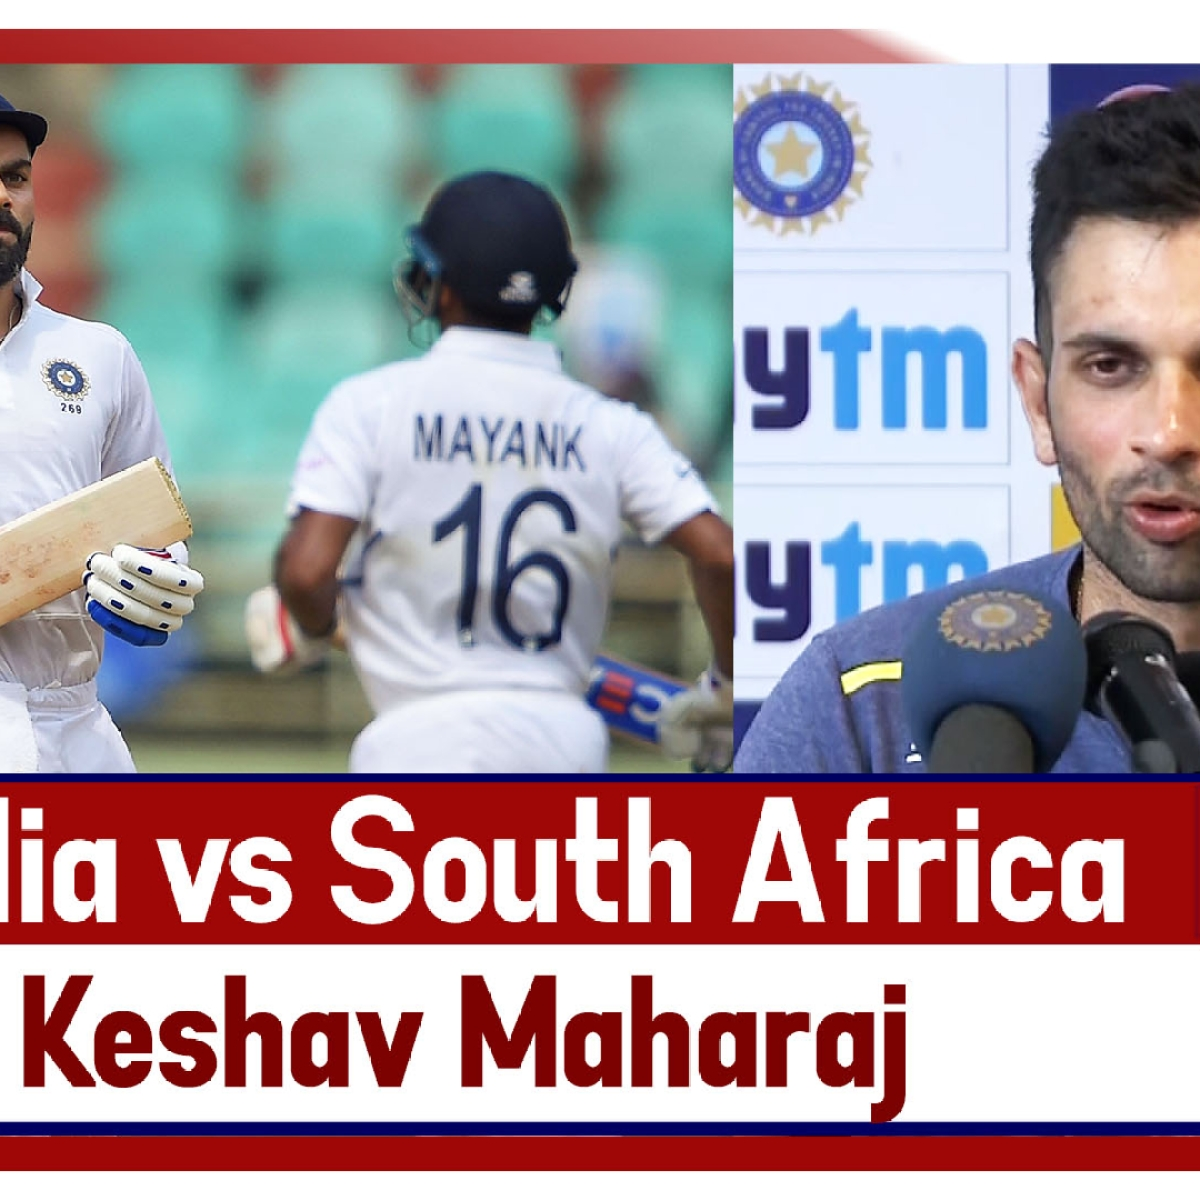 Ind vs SA: 'Game Didn't Go According To Plan In Terms Of Bowling,' Says Keshav Maharaj